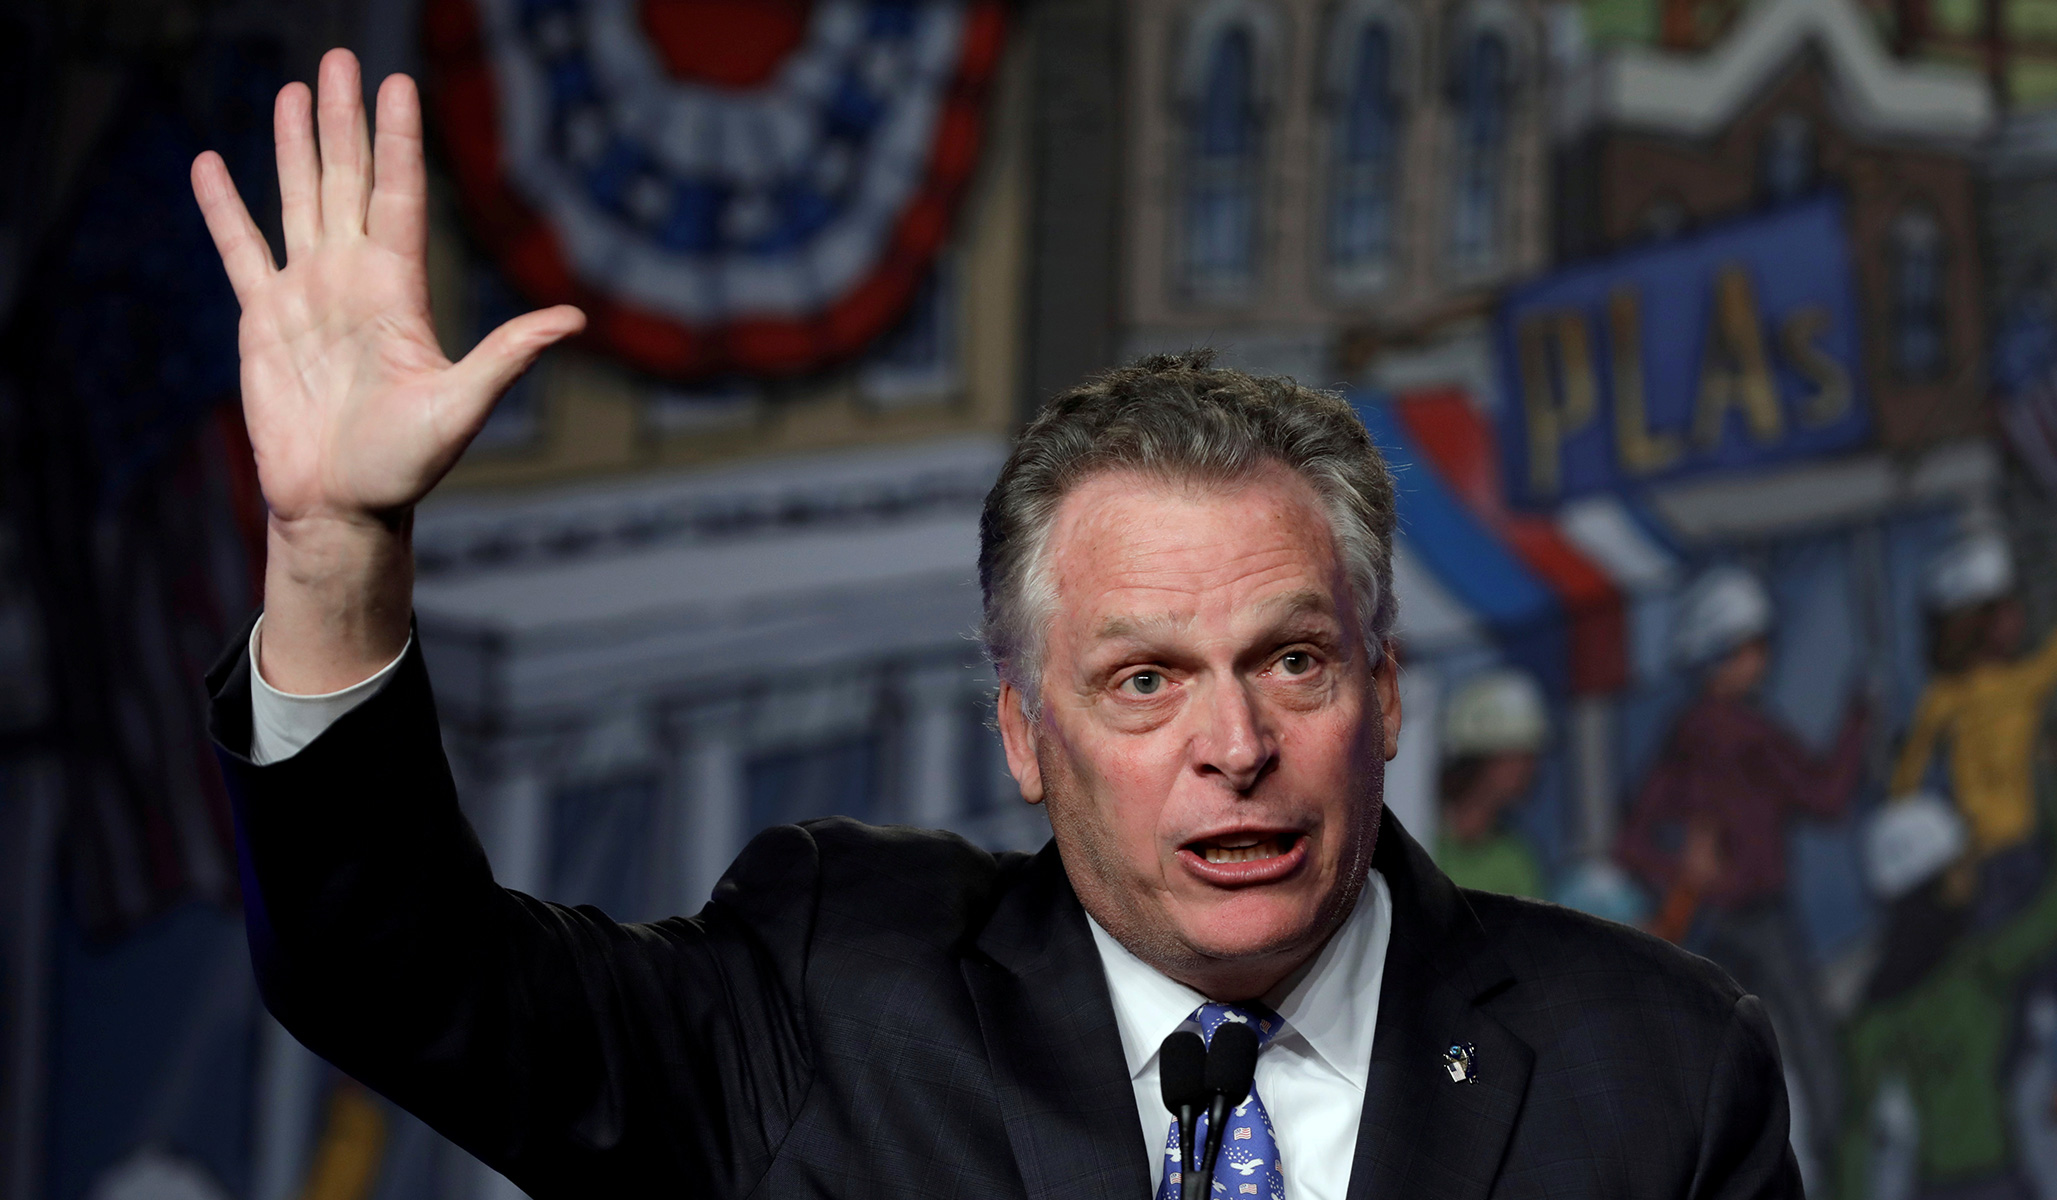 Terry McAuliffe Keeps Digging on the 2000 Election Being Stolen | National Review